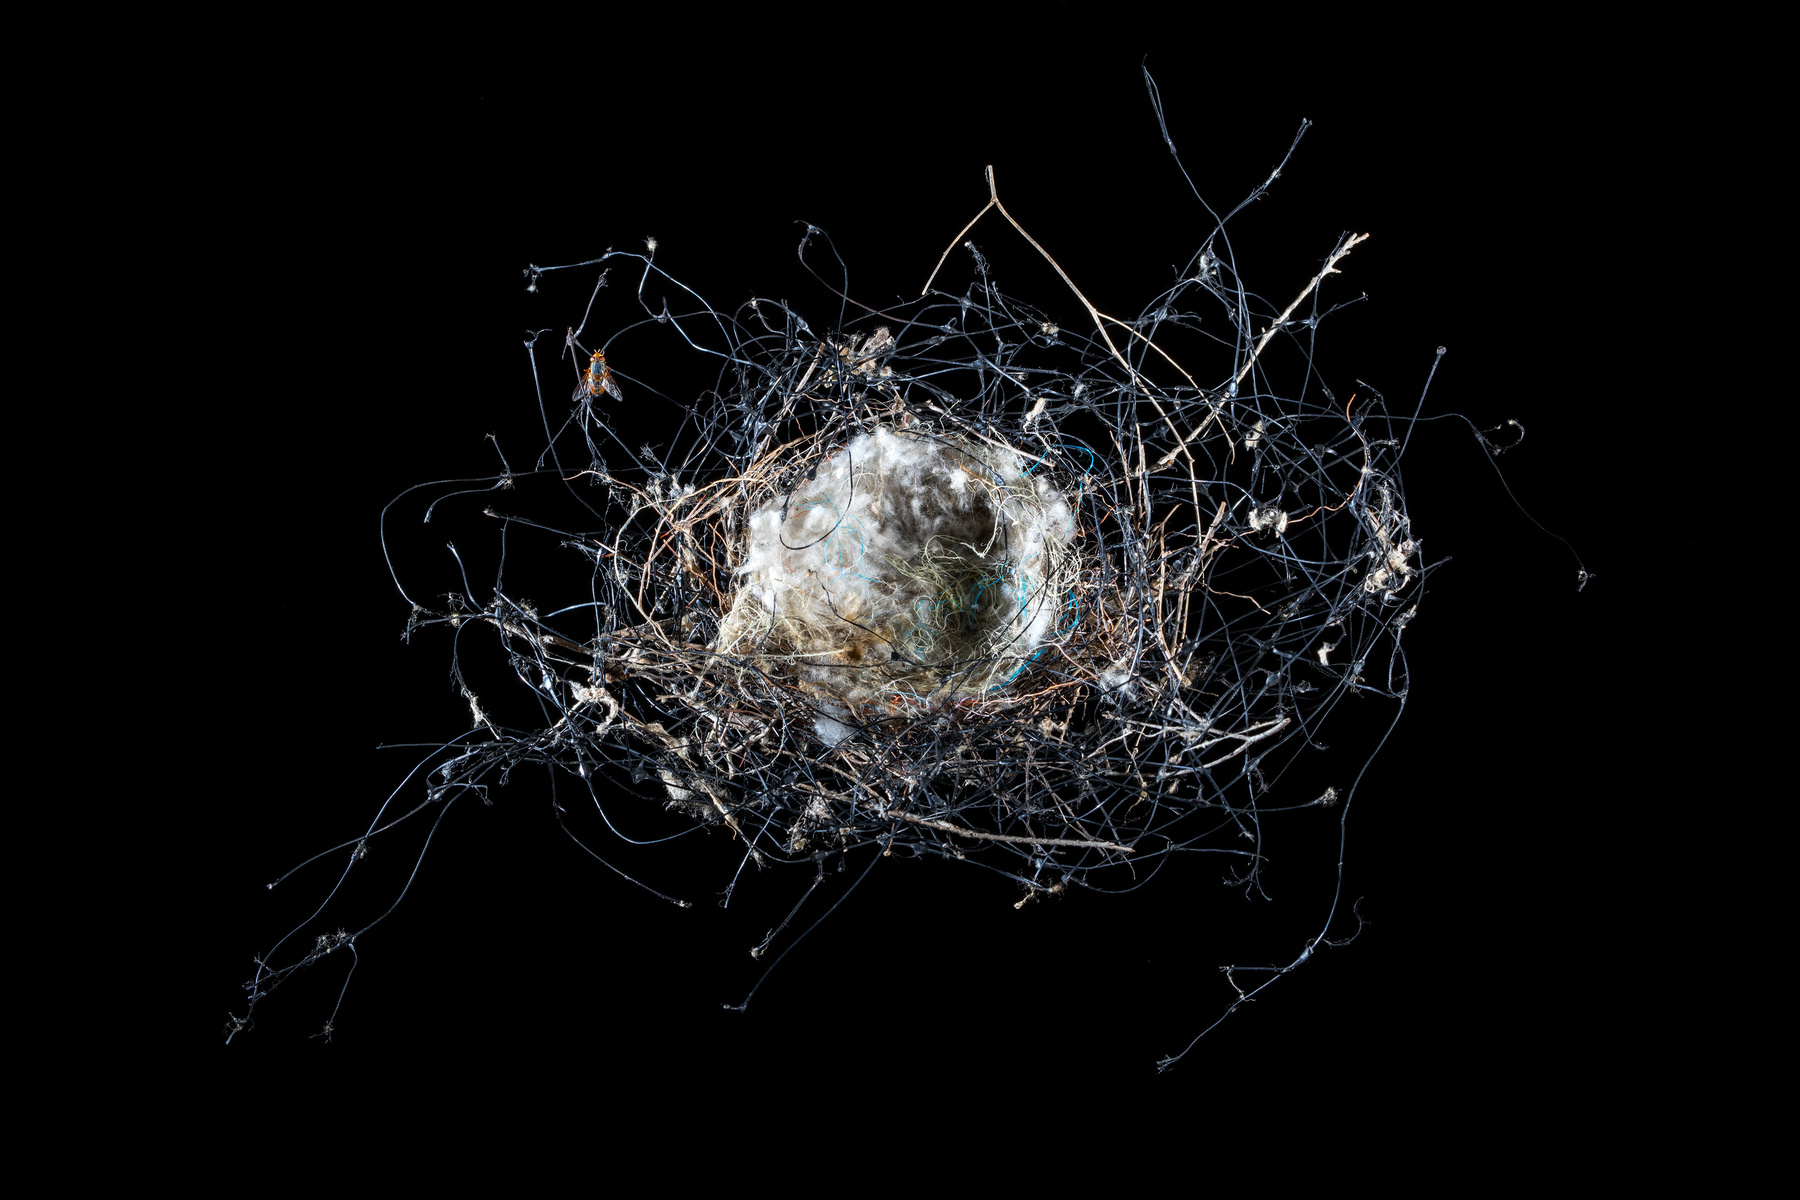 Found bird's nest of plastic netting and other unnatural fibres,  2016  Pigment print on platine fibre paper, 70x110cm